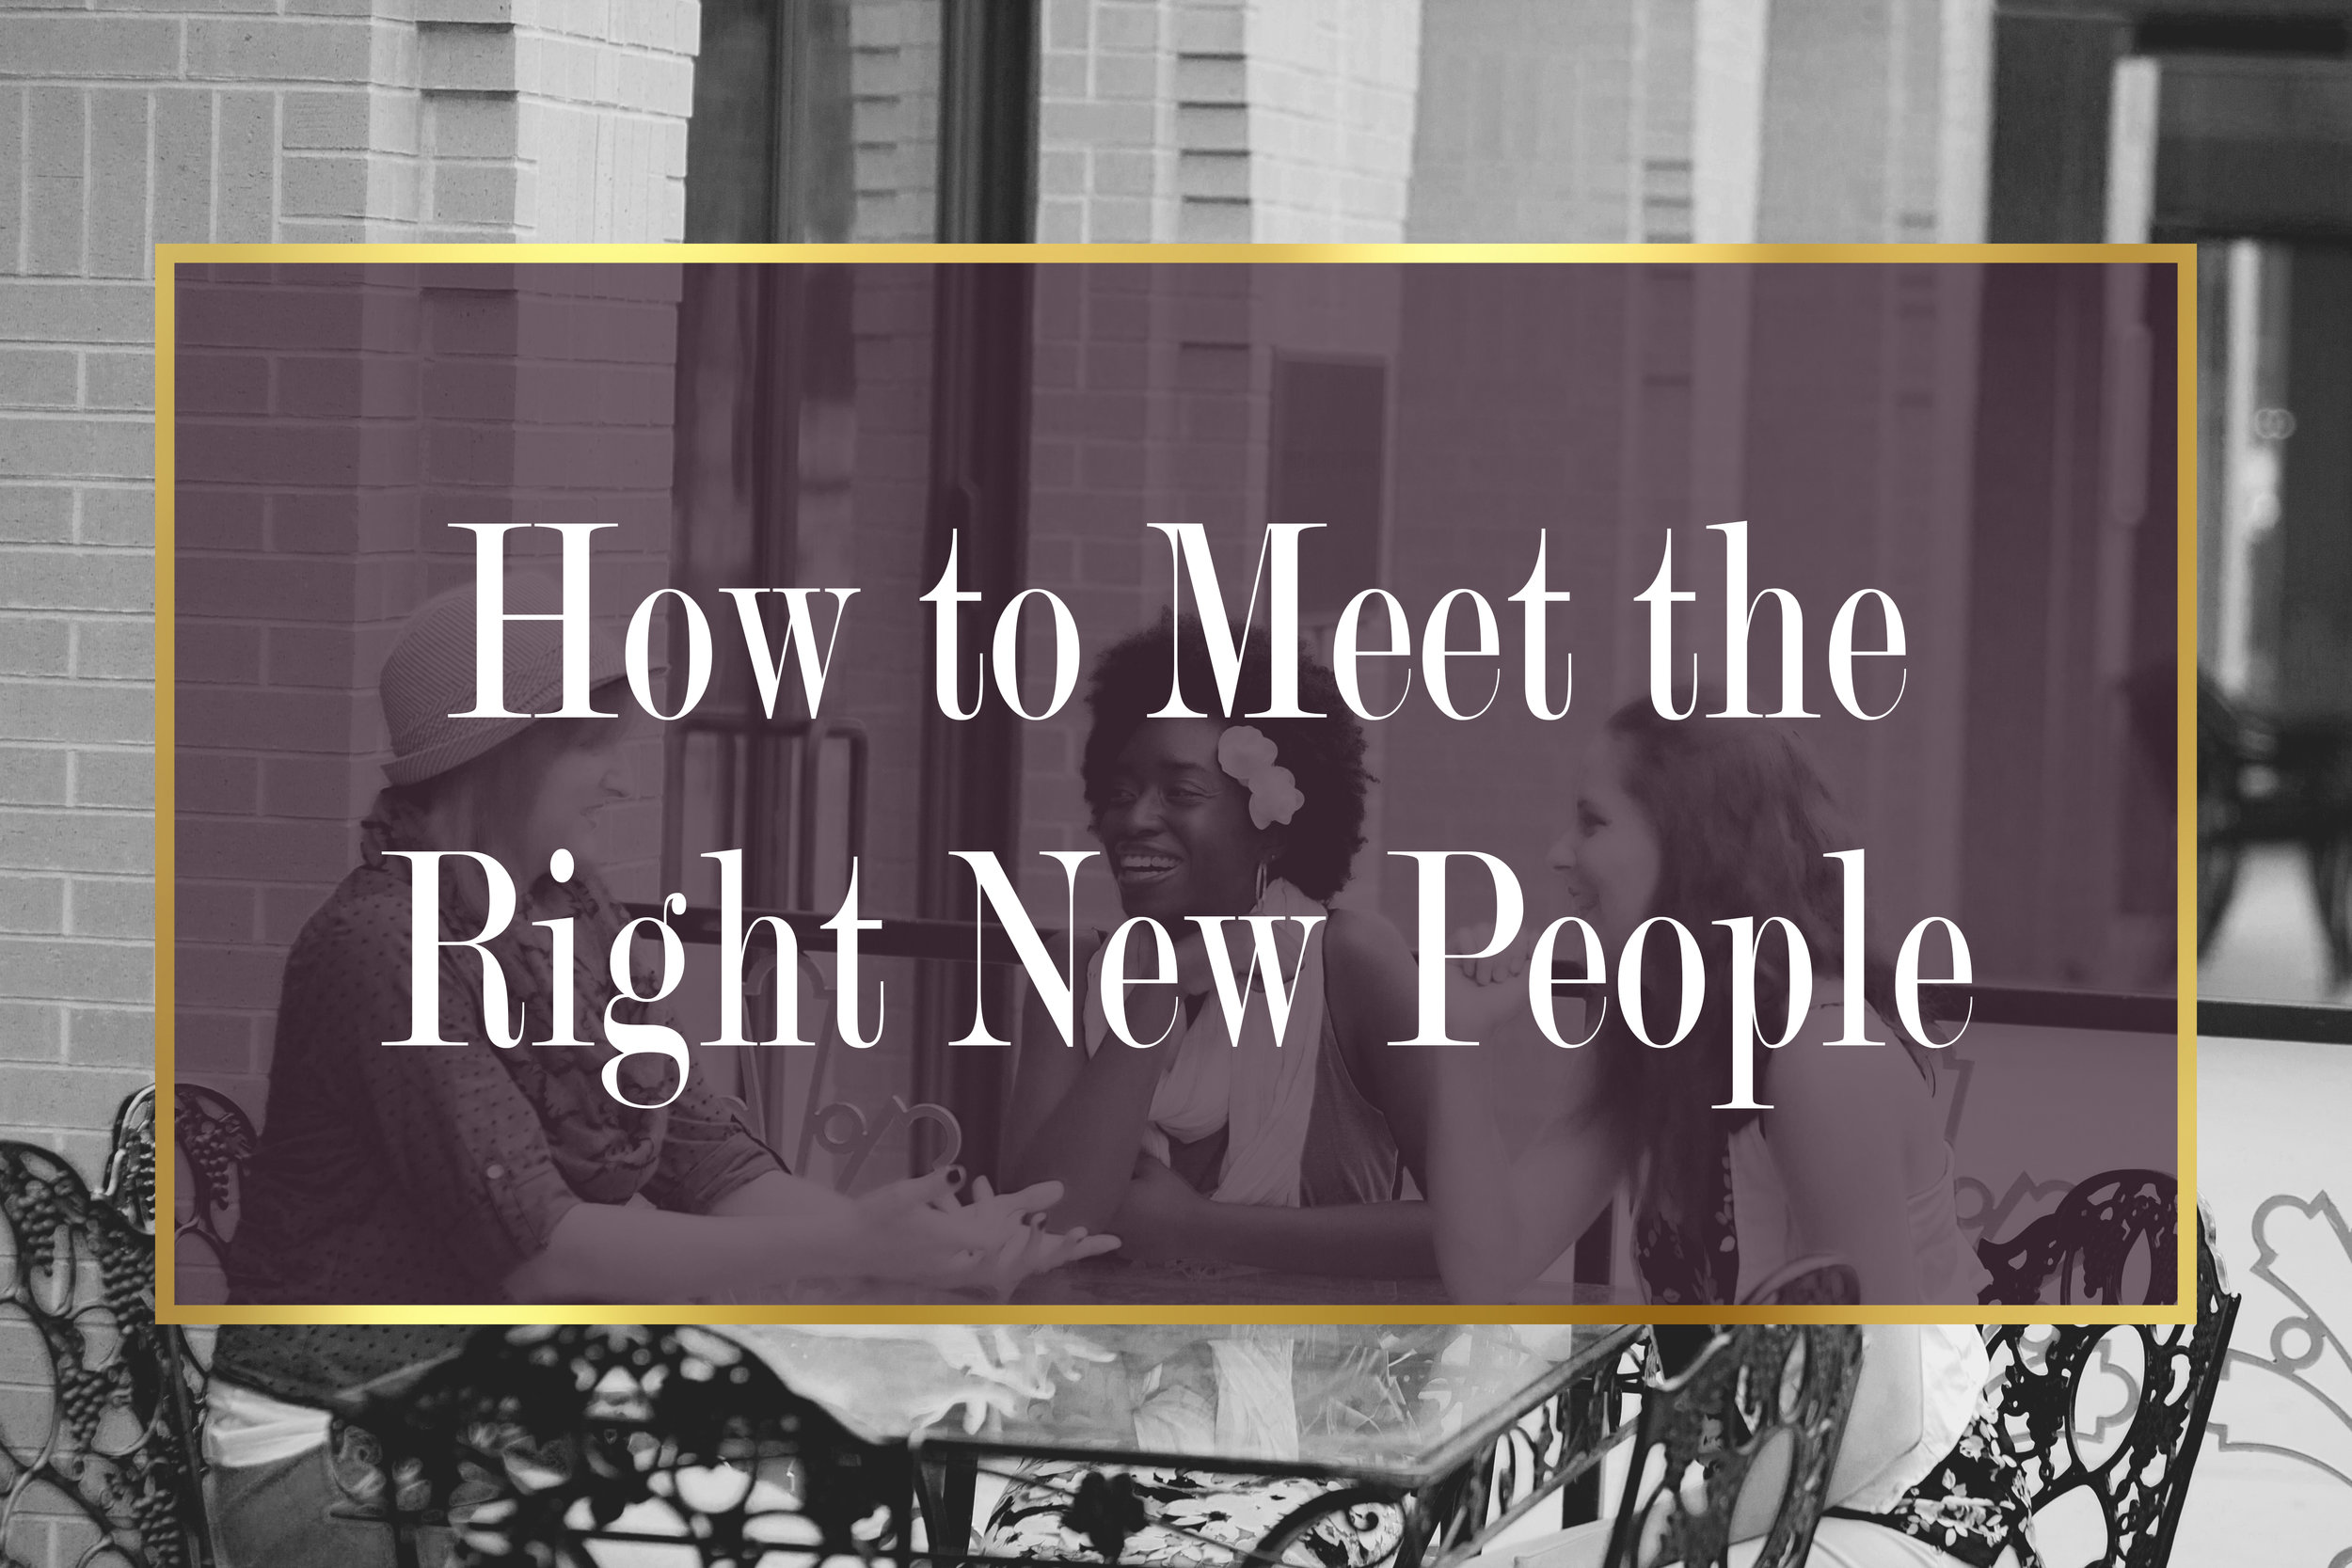 How to Meet the Perfect New People For You   Shreveport, La   BAFB   Bossier City